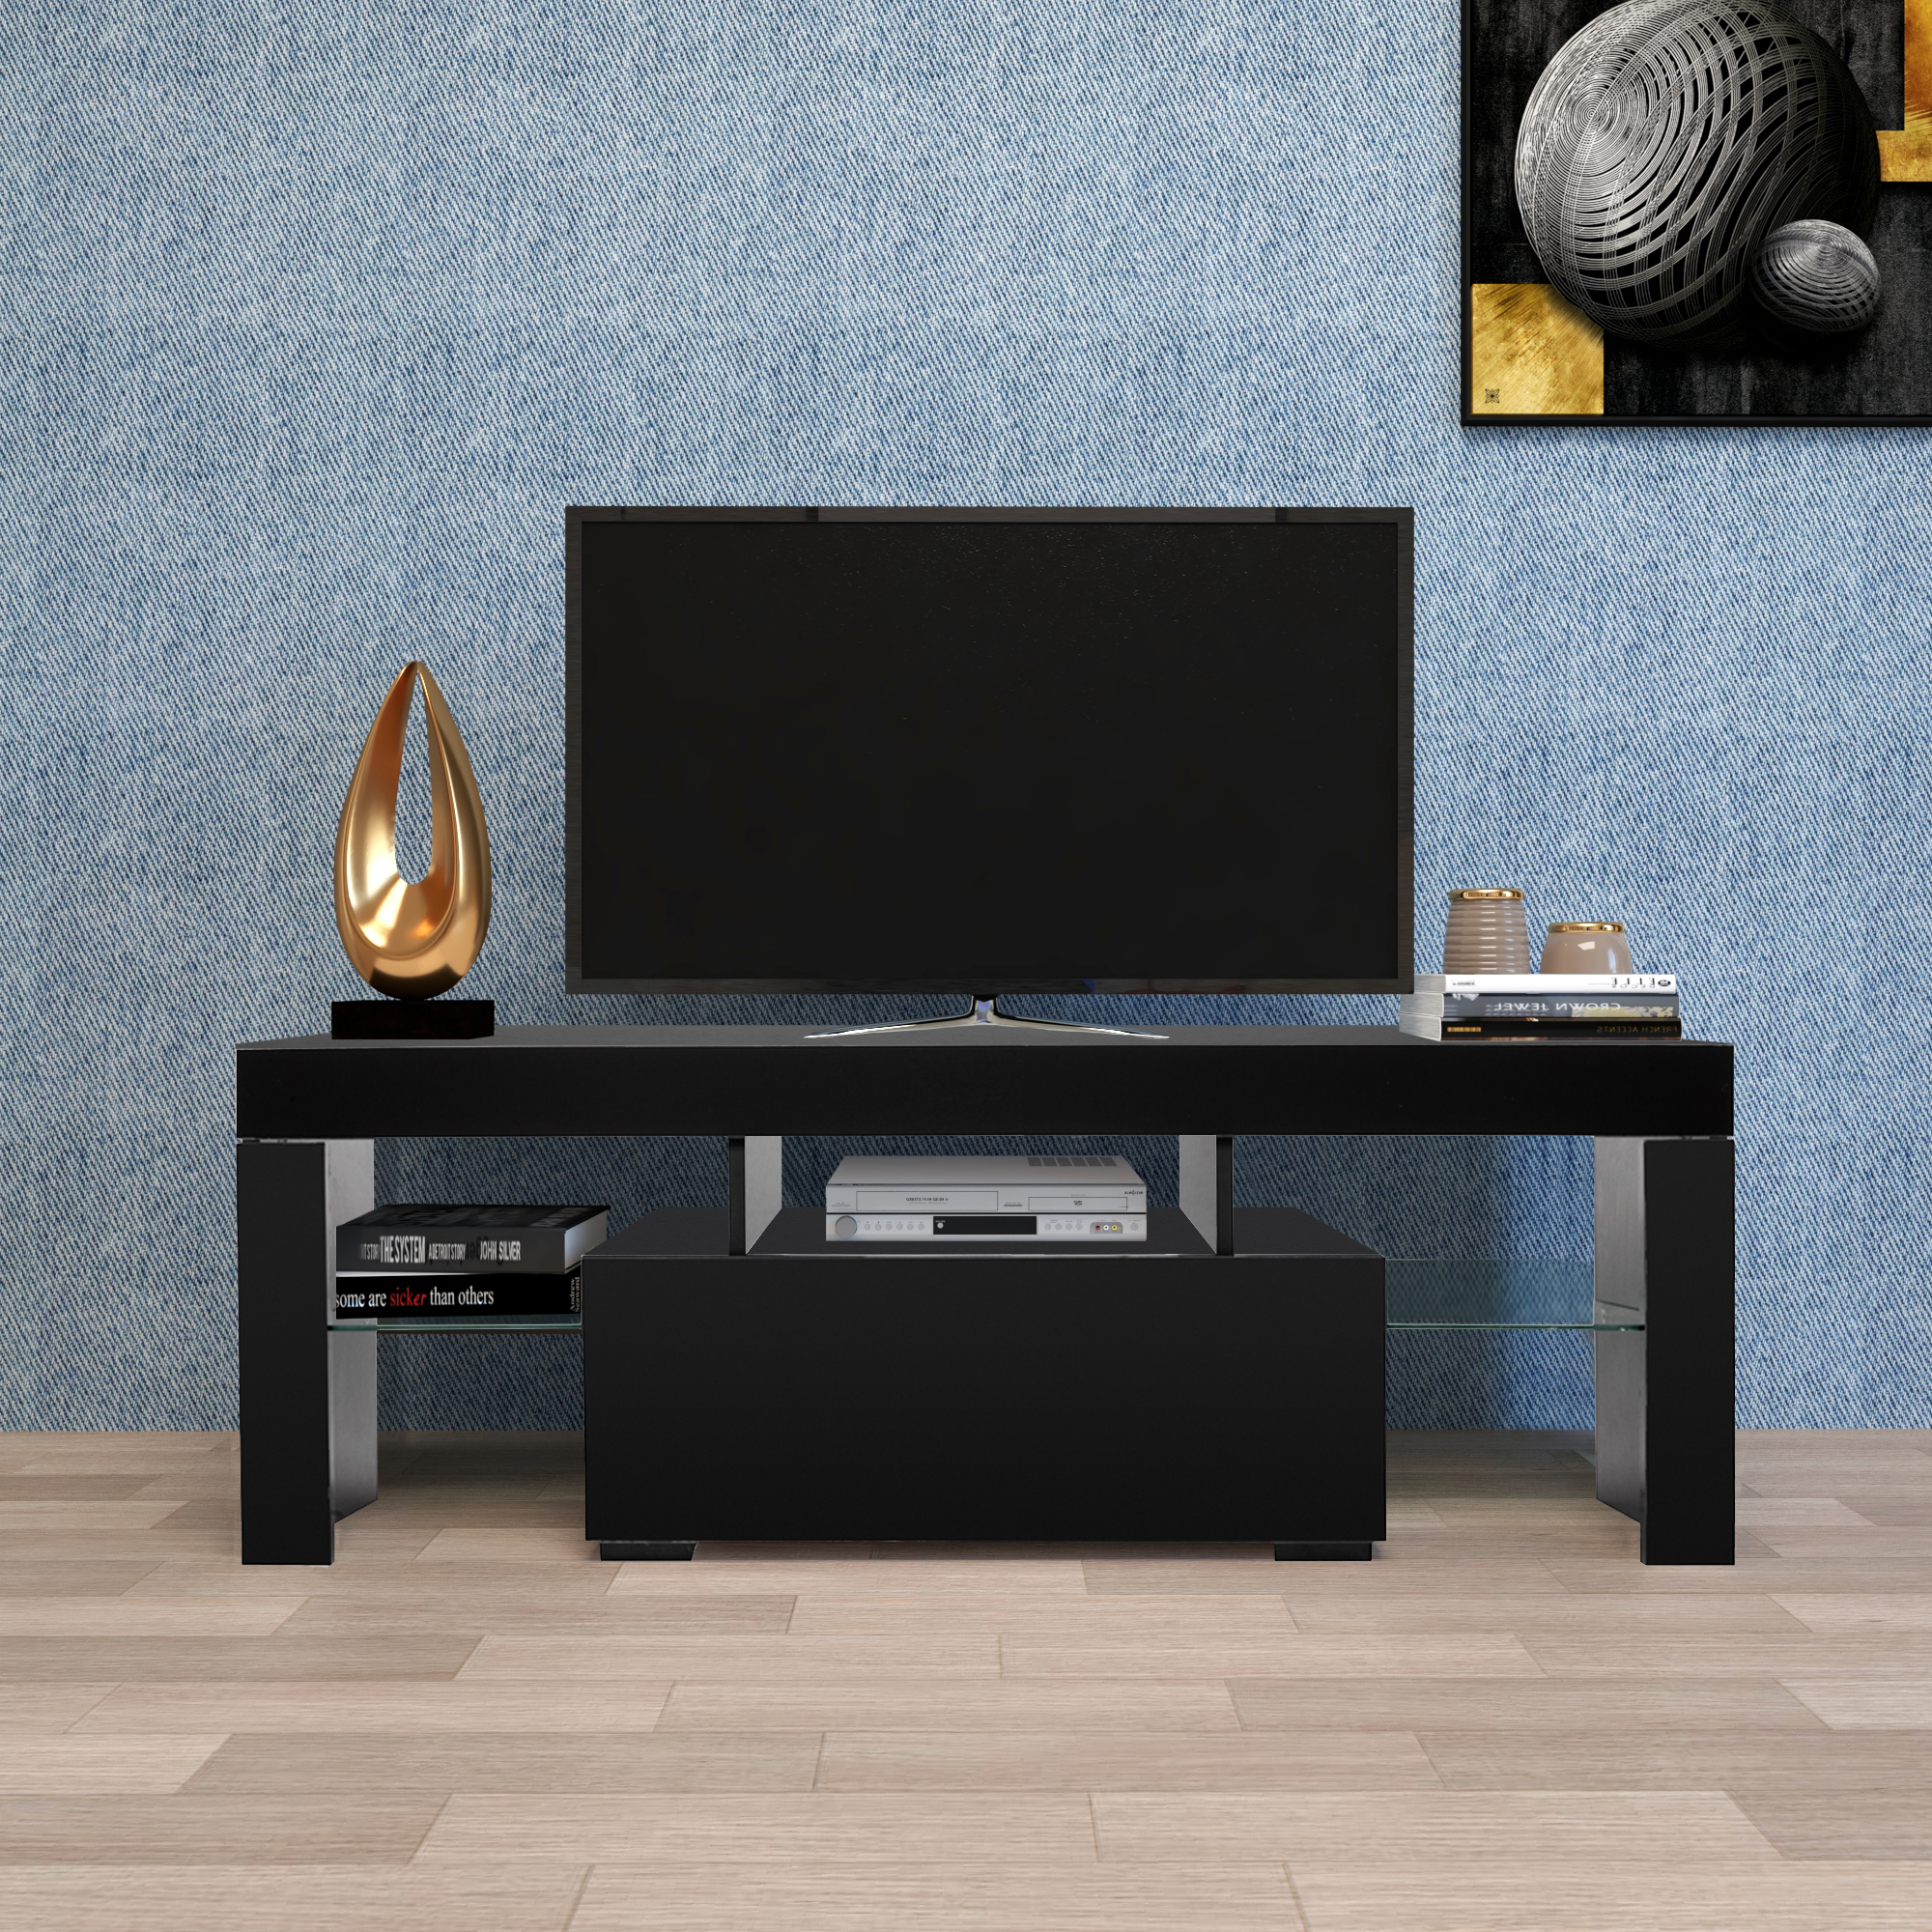 Entertainment Centers And Tv Stands, Yofe Tv Stand With Intended For Tv Stands Fwith Tv Mount Silver/black (View 5 of 20)